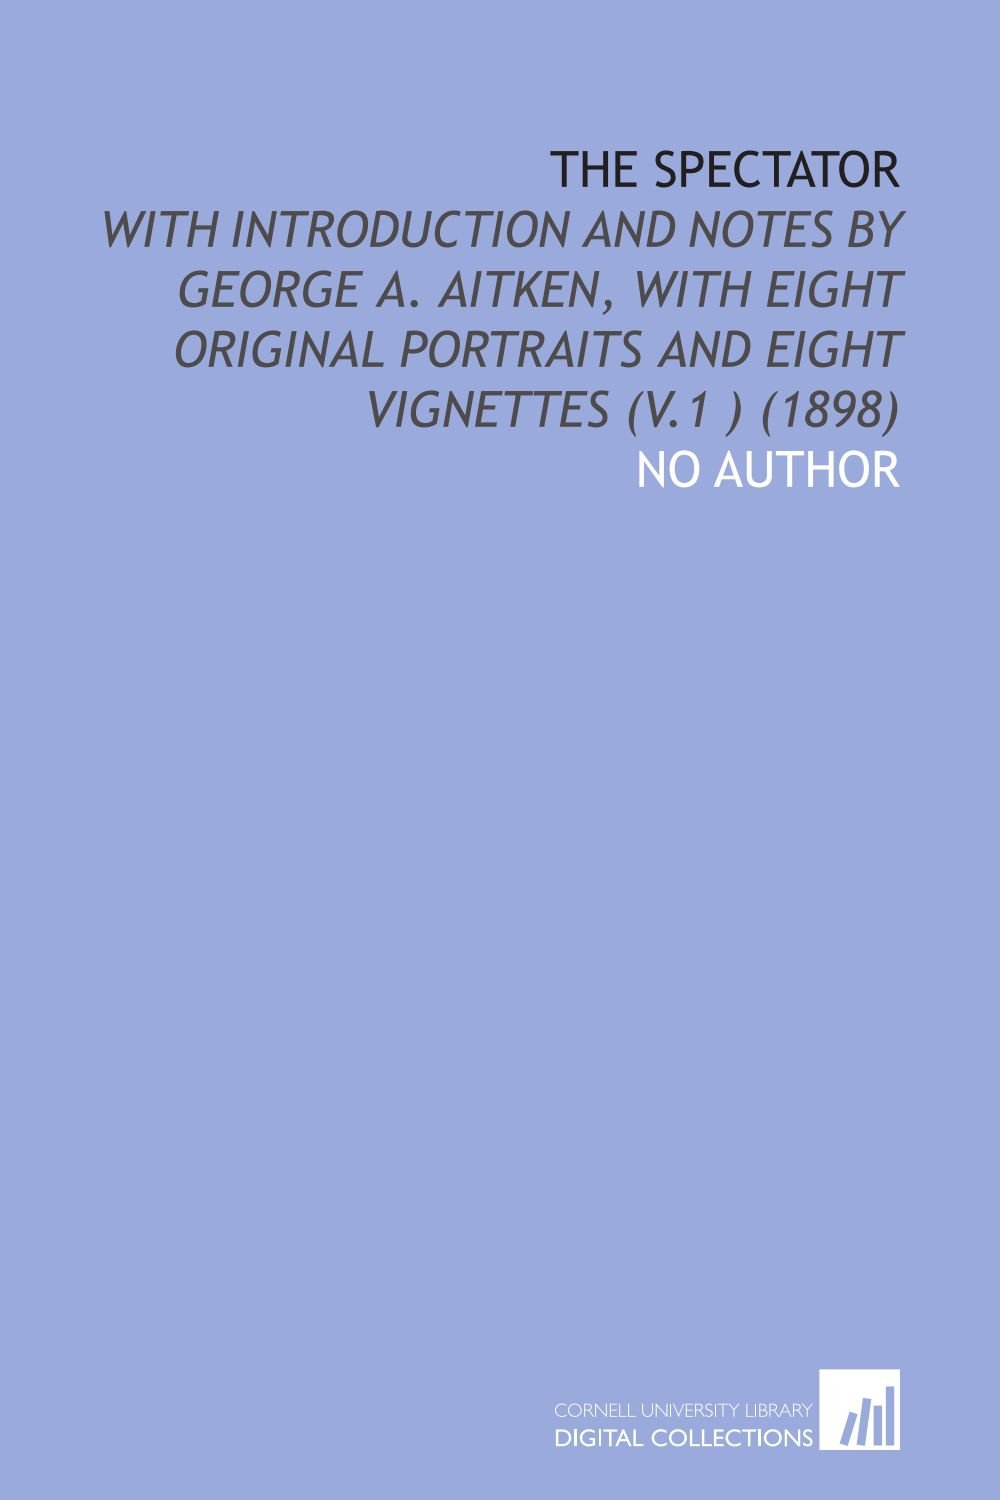 The Spectator: With Introduction and Notes by George a. Aitken, With Eight Original Portraits and Eight Vignettes (V.1 ) (1898) pdf